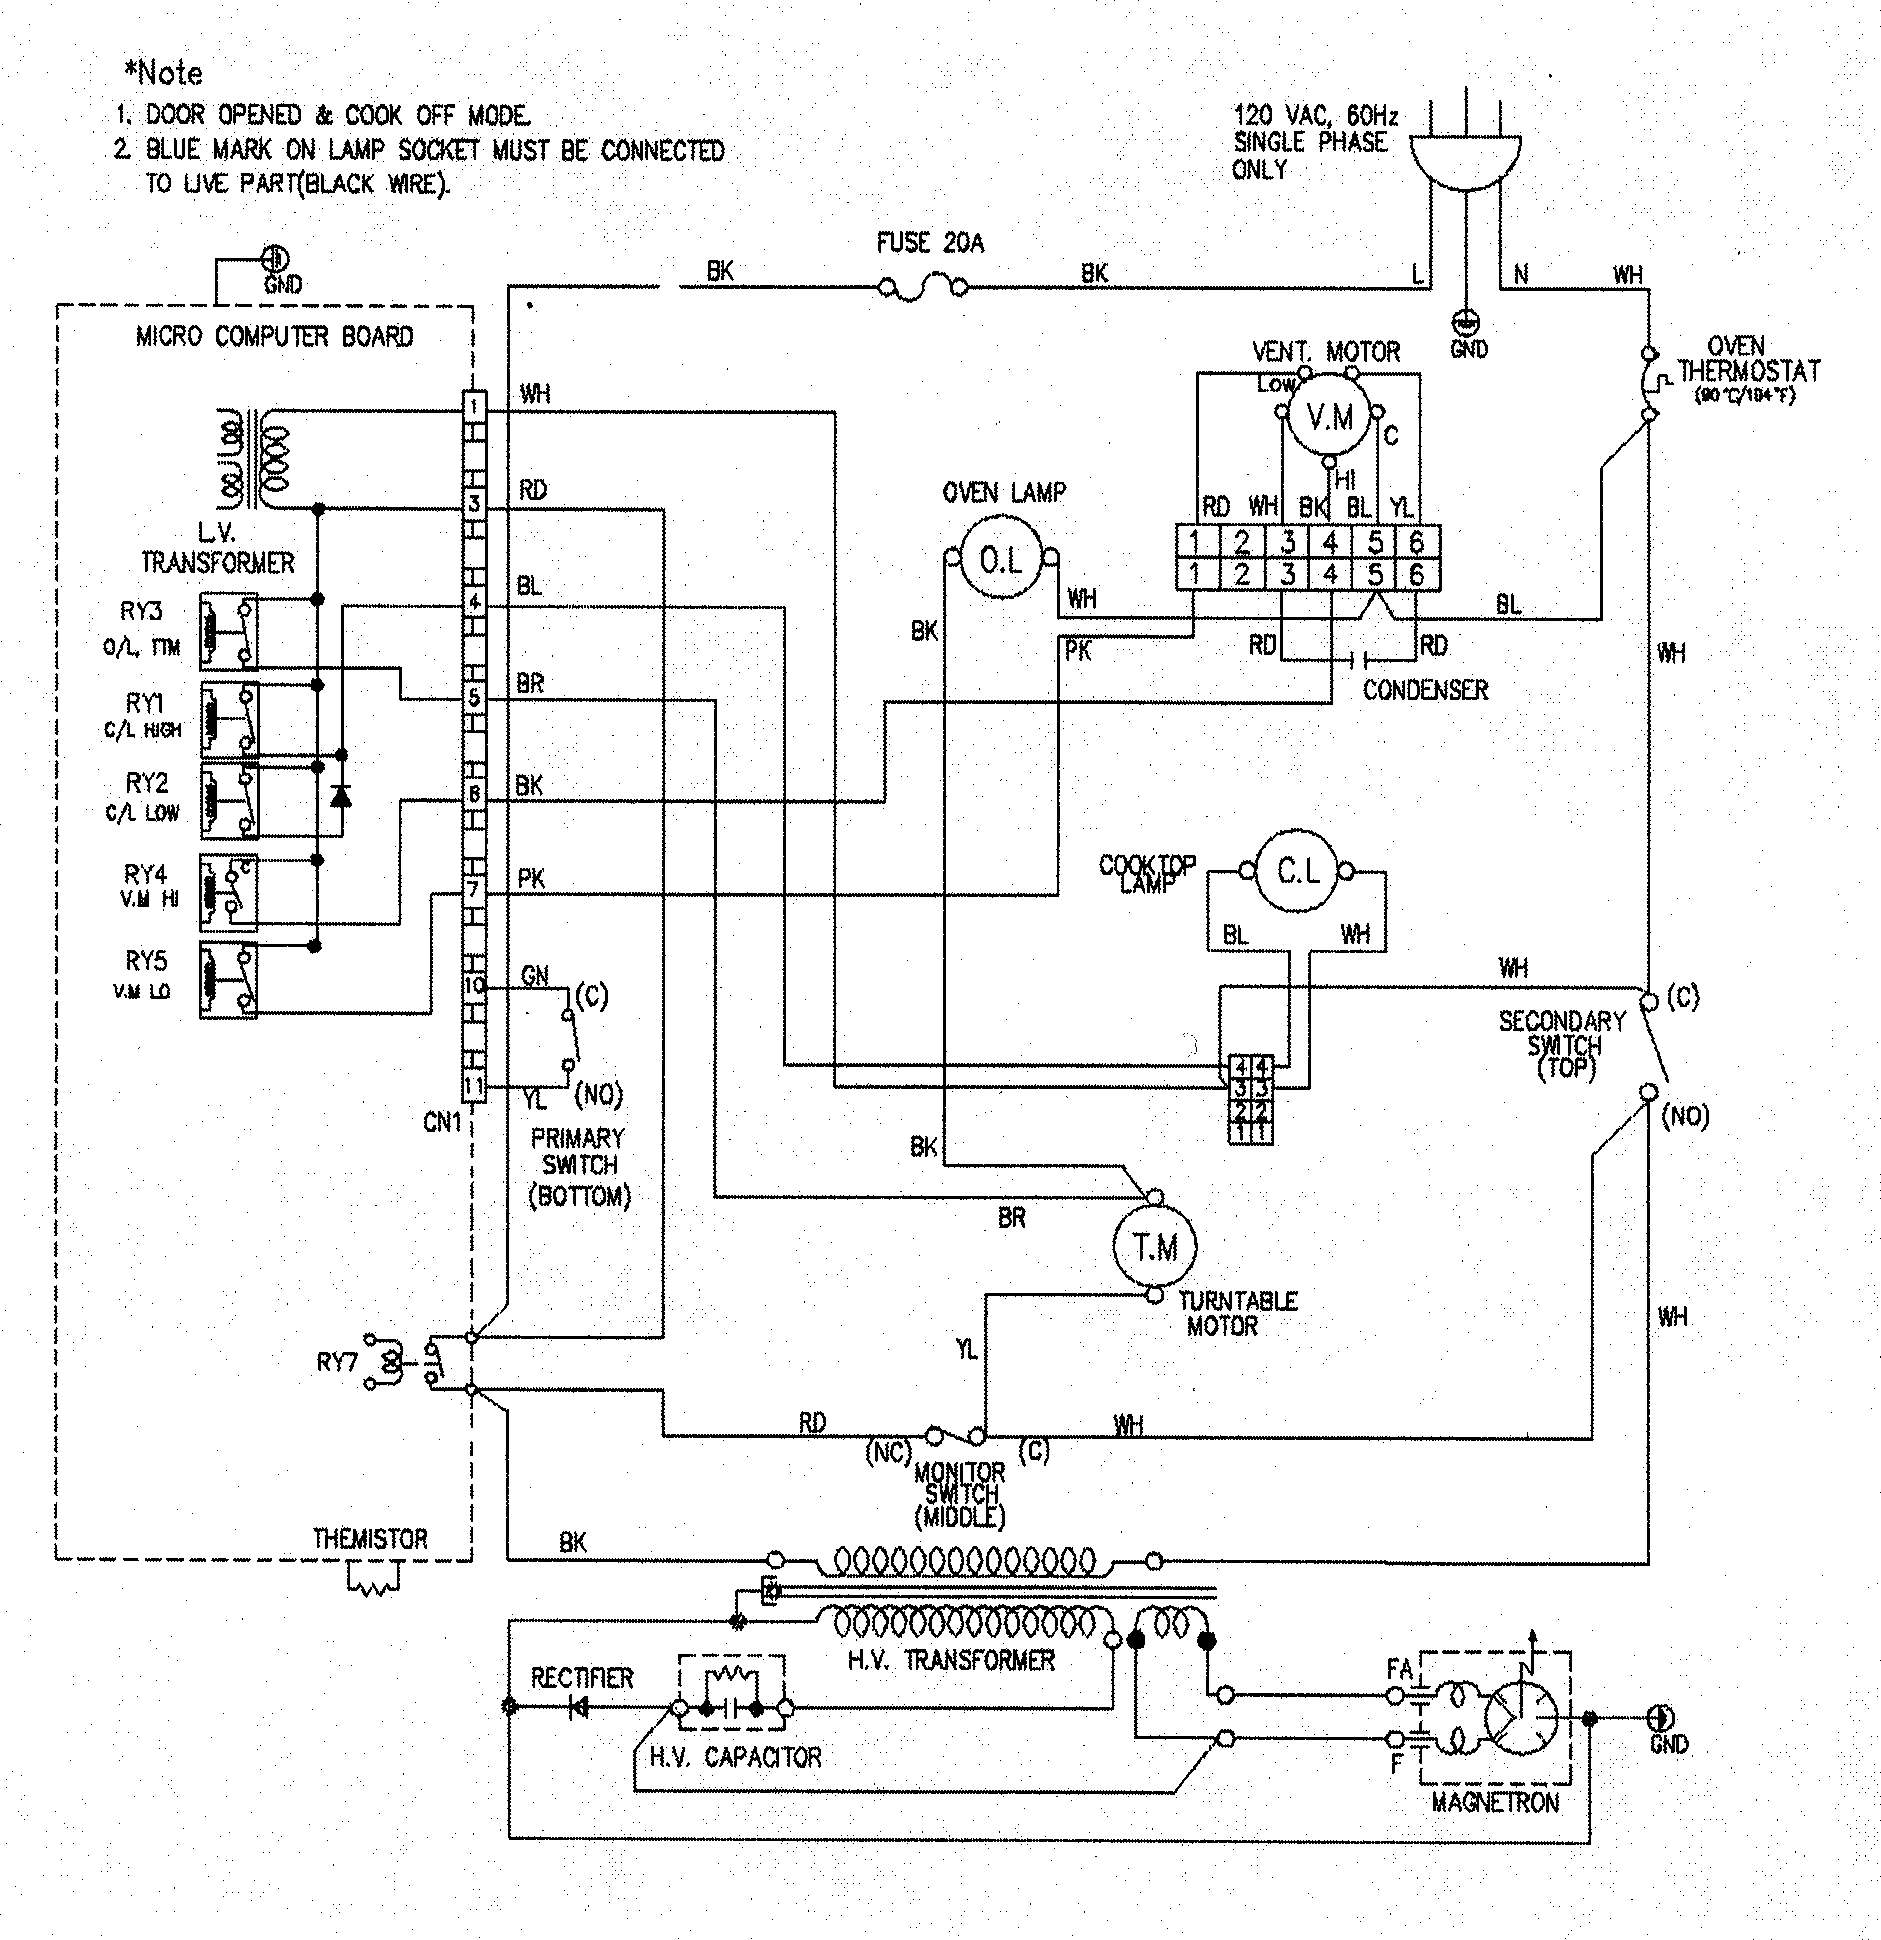 hight resolution of microwave oven wiring diagram wiring diagram show for lg microwave oven wiring diagram